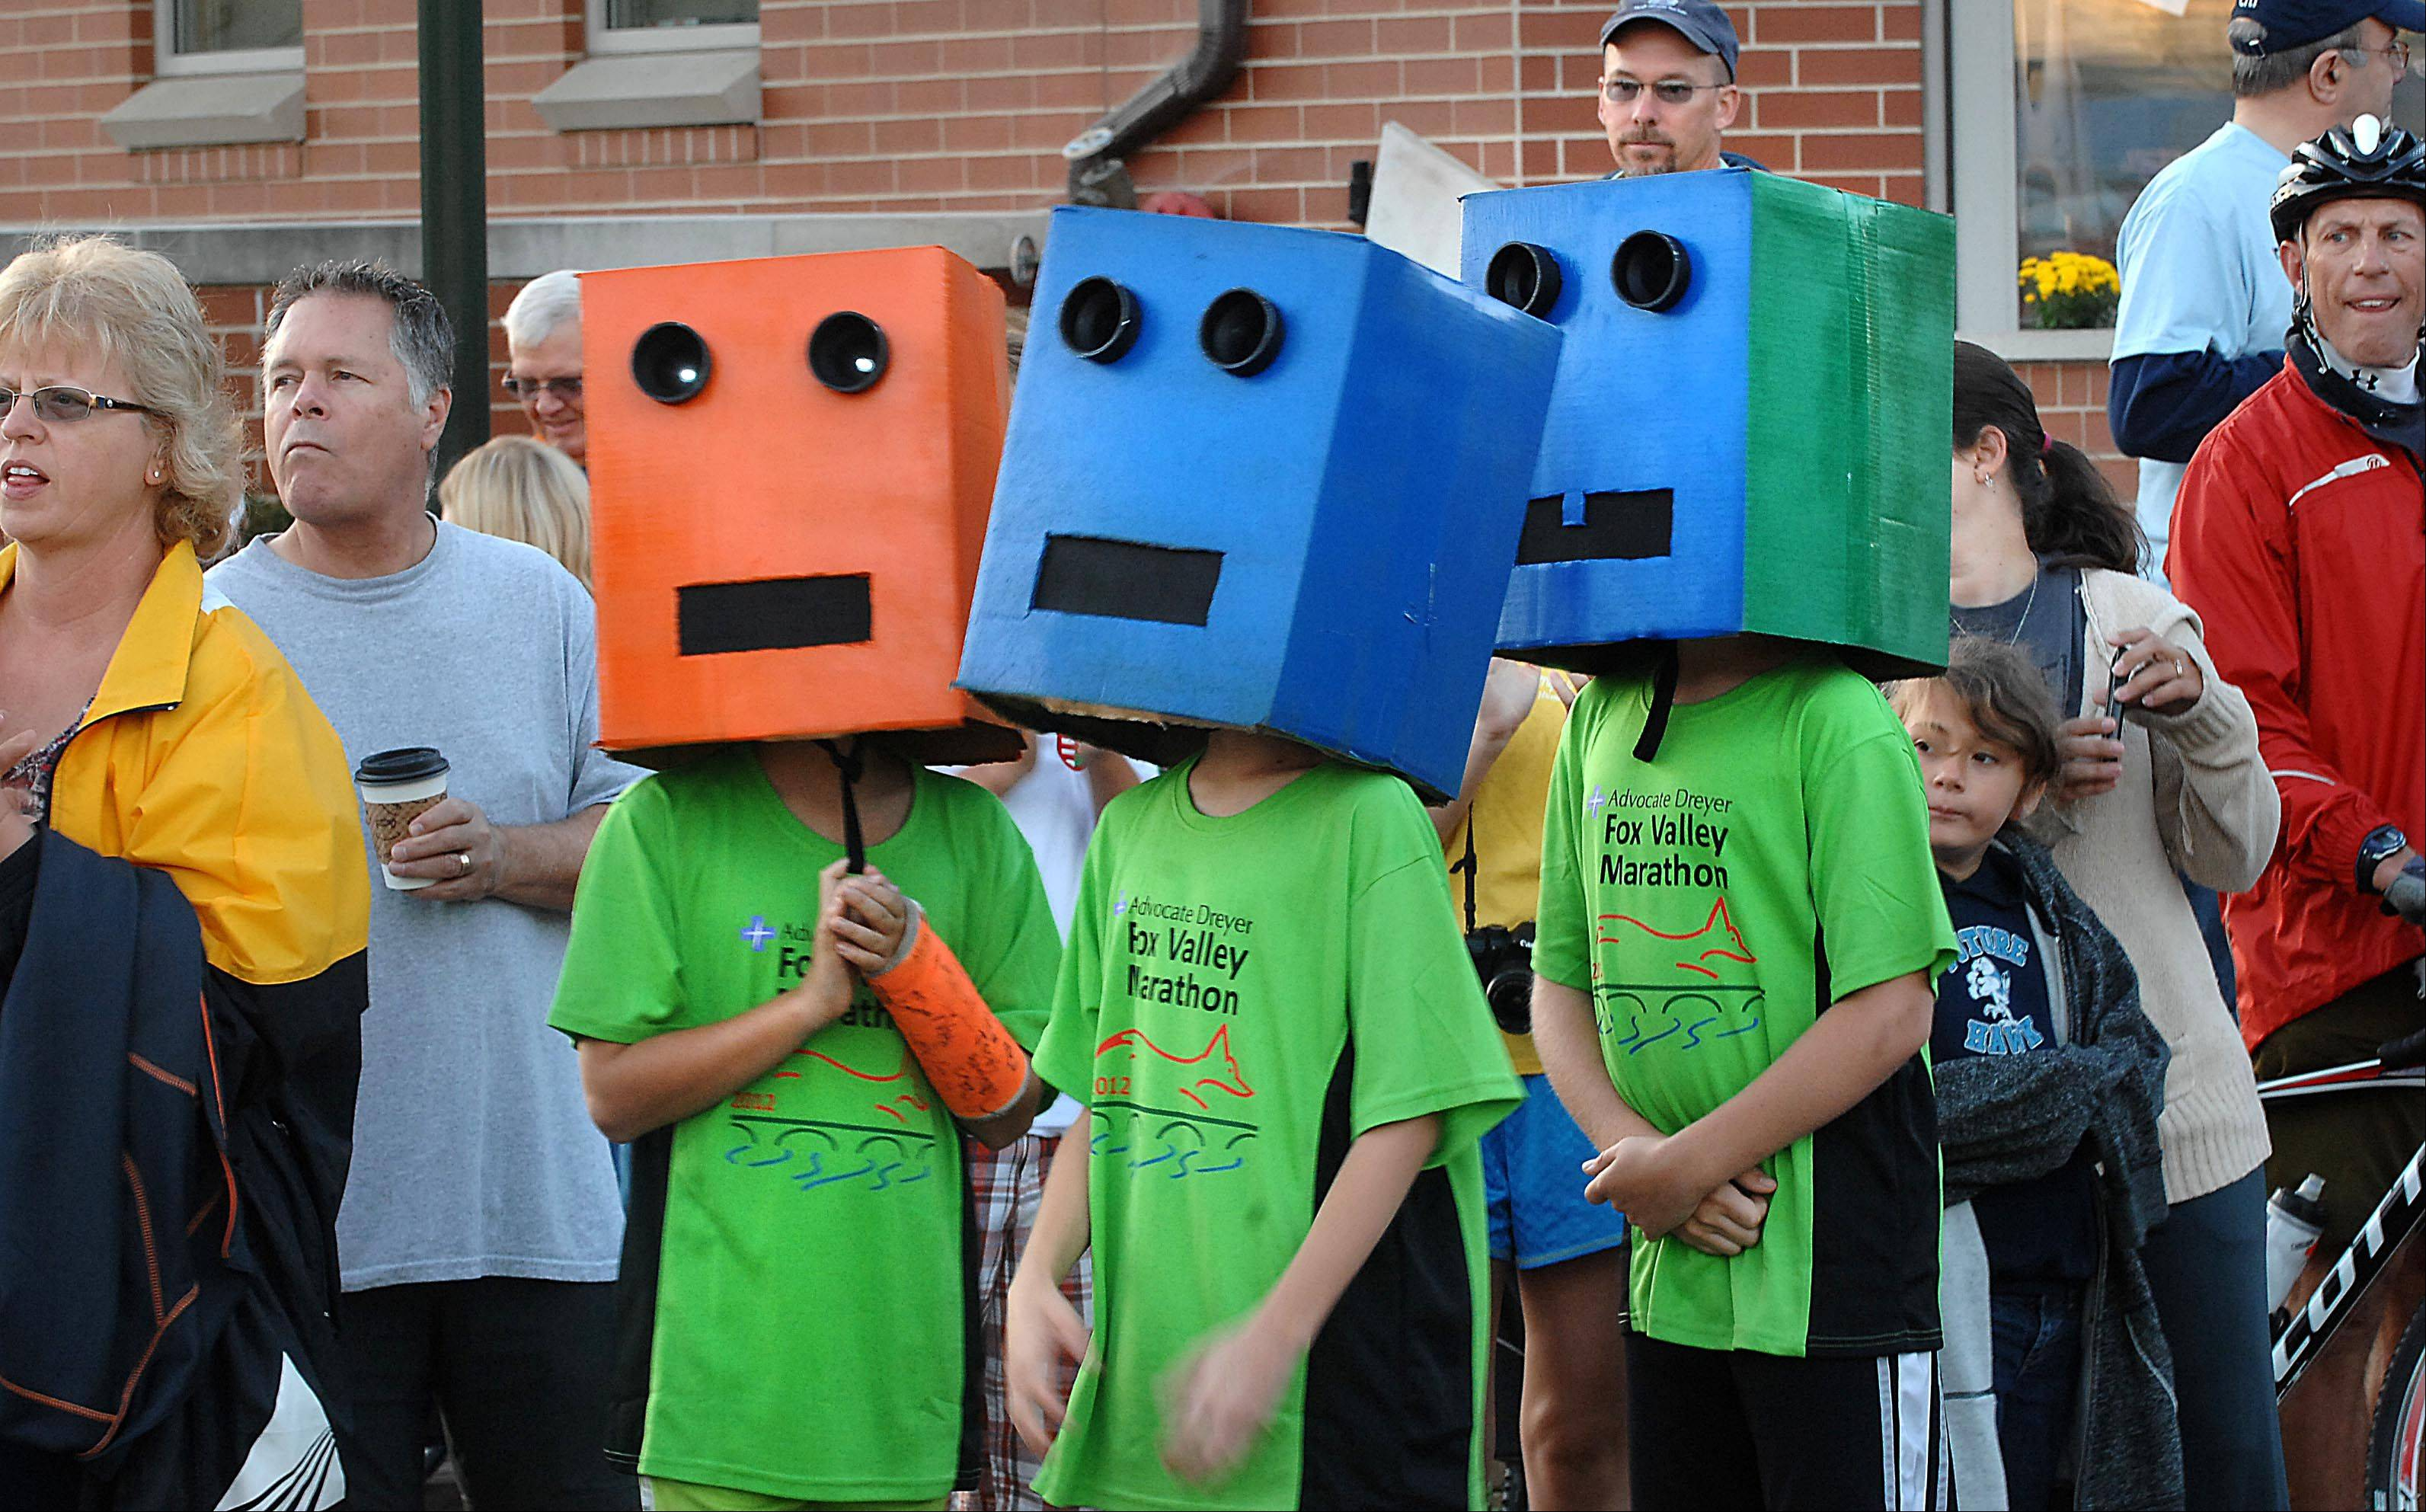 Matthew Fuller, 10, Hank Smith, 11, and Nathan Hilkenann, 10, wore painted boxes with lighted eyes on First Street in St. Charles Sunday morning at the start of the Fox Valley Marathon. The top 30 finishers qualified for the prestigious Boston Marathon. There was also a half marathon and a Final Fall 20-mile race.